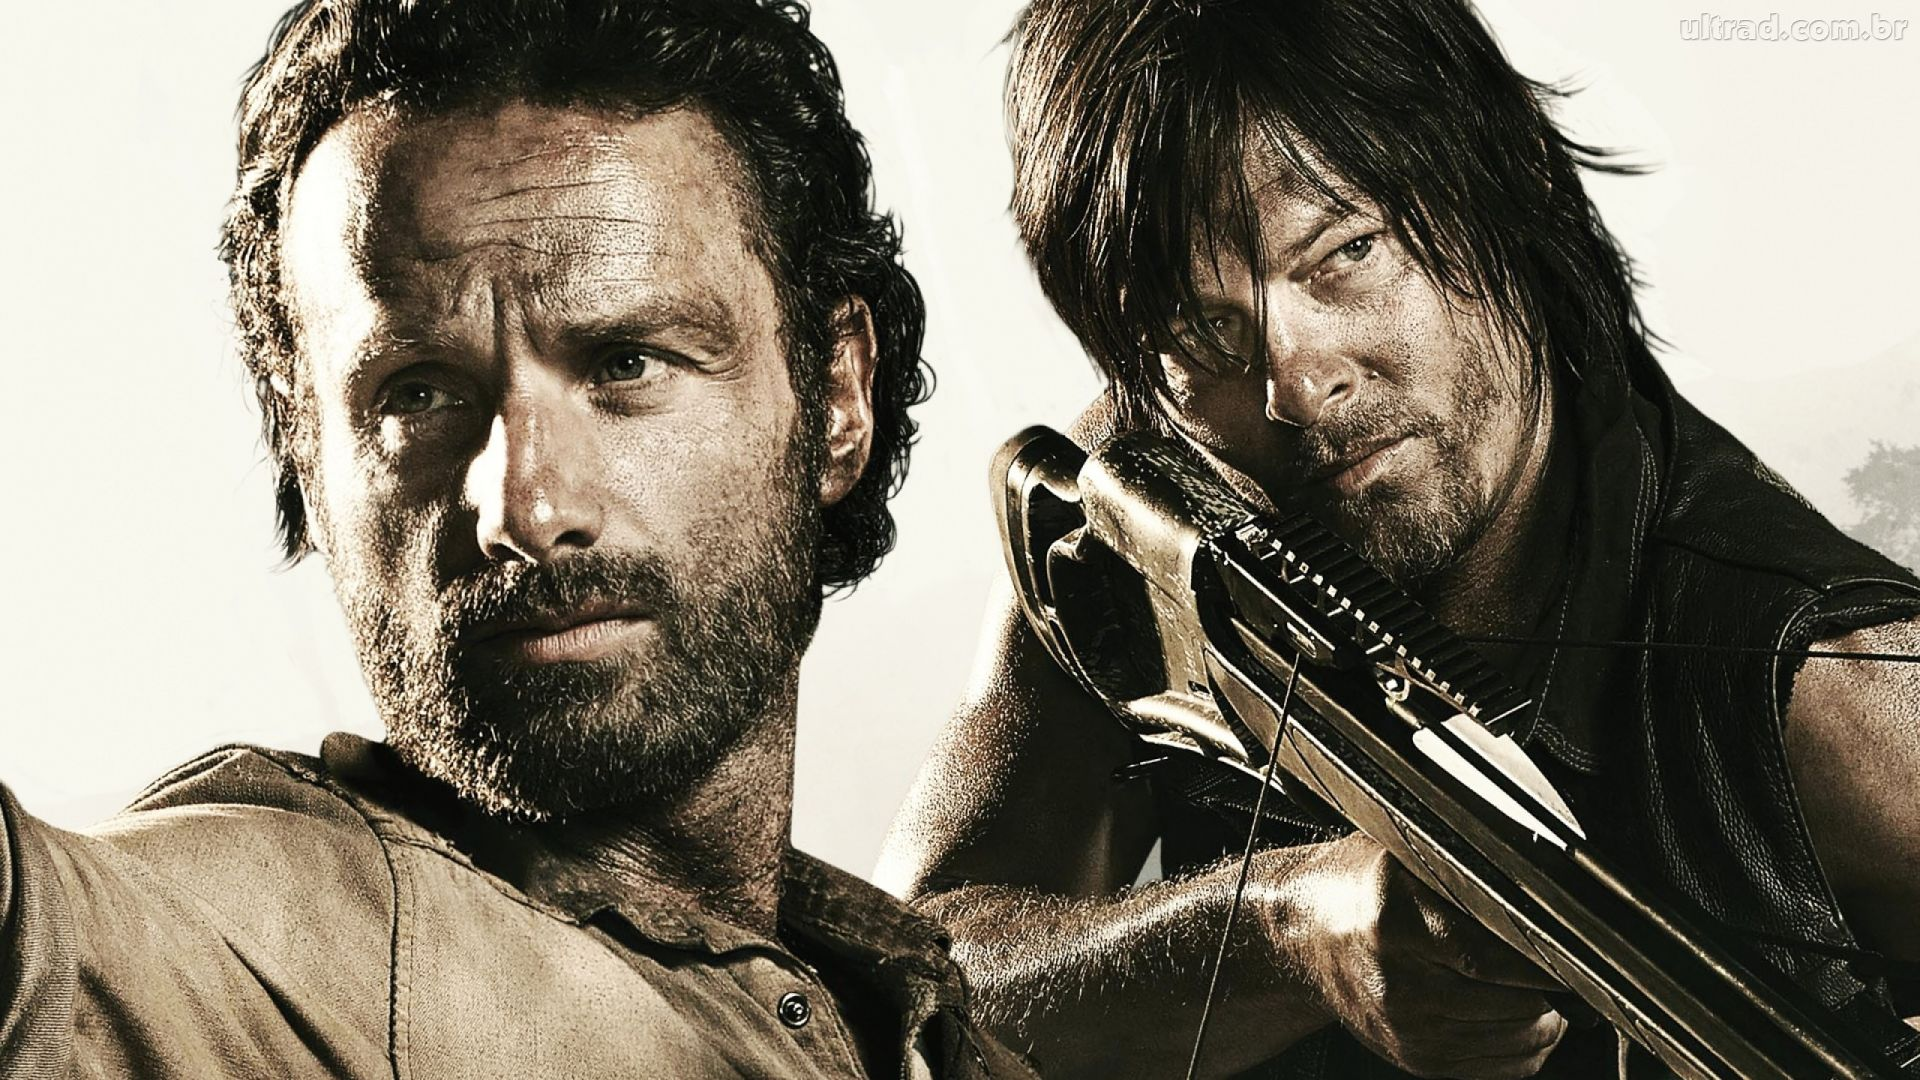 the walking dead talk: rick or daryl?